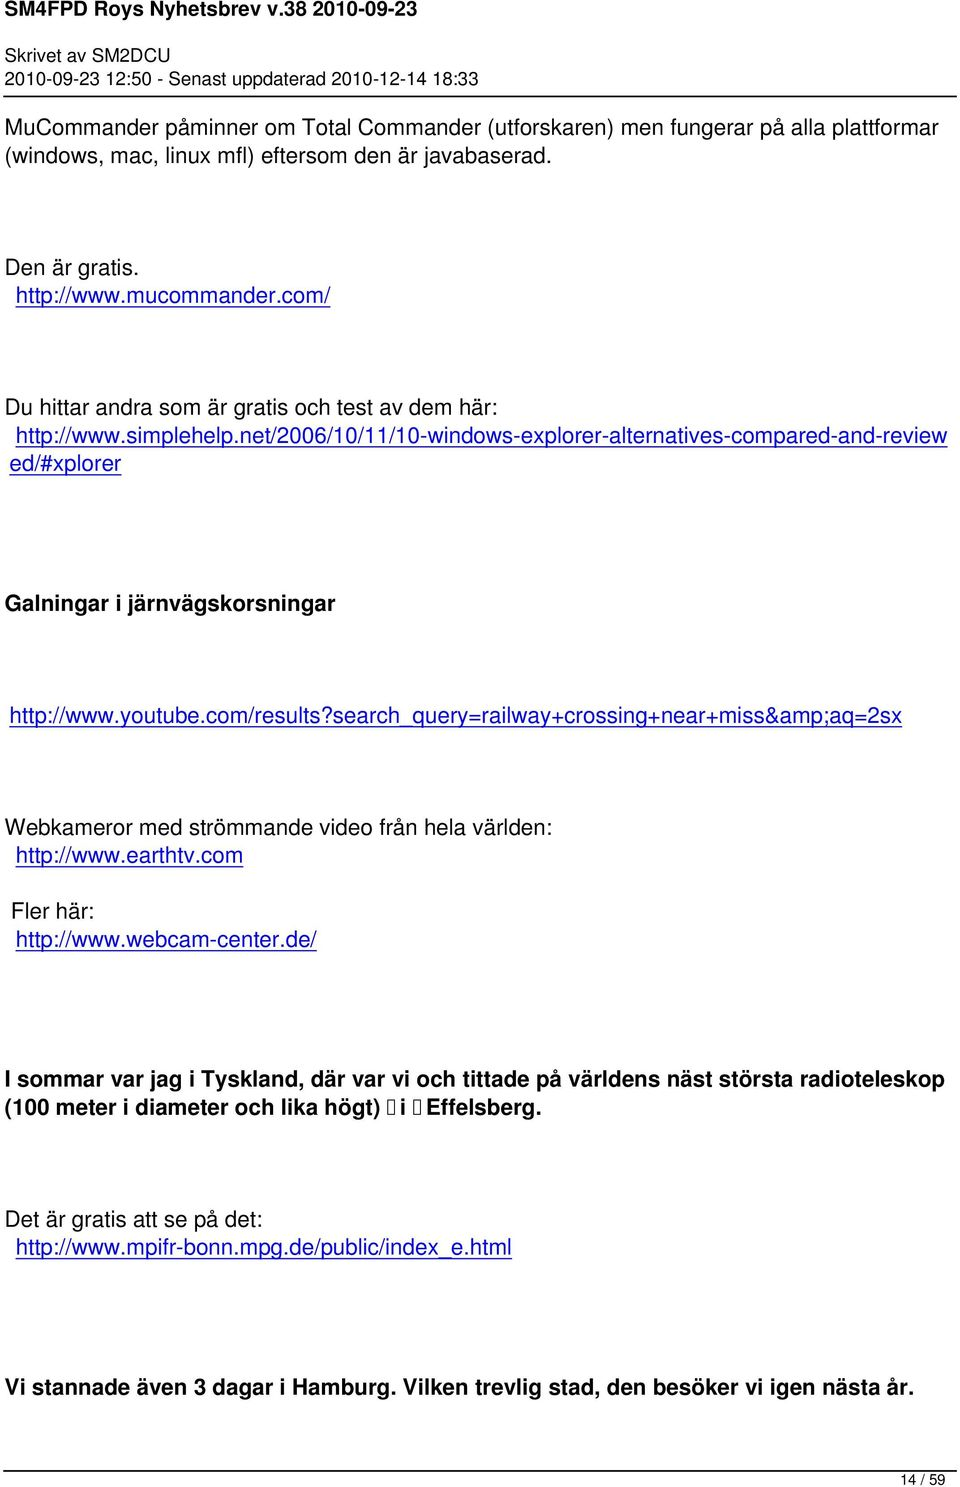 youtube.com/results?search_query=railway+crossing+near+miss&aq=2sx Webkameror med strömmande video från hela världen: http://www.earthtv.com Fler här: http://www.webcam-center.